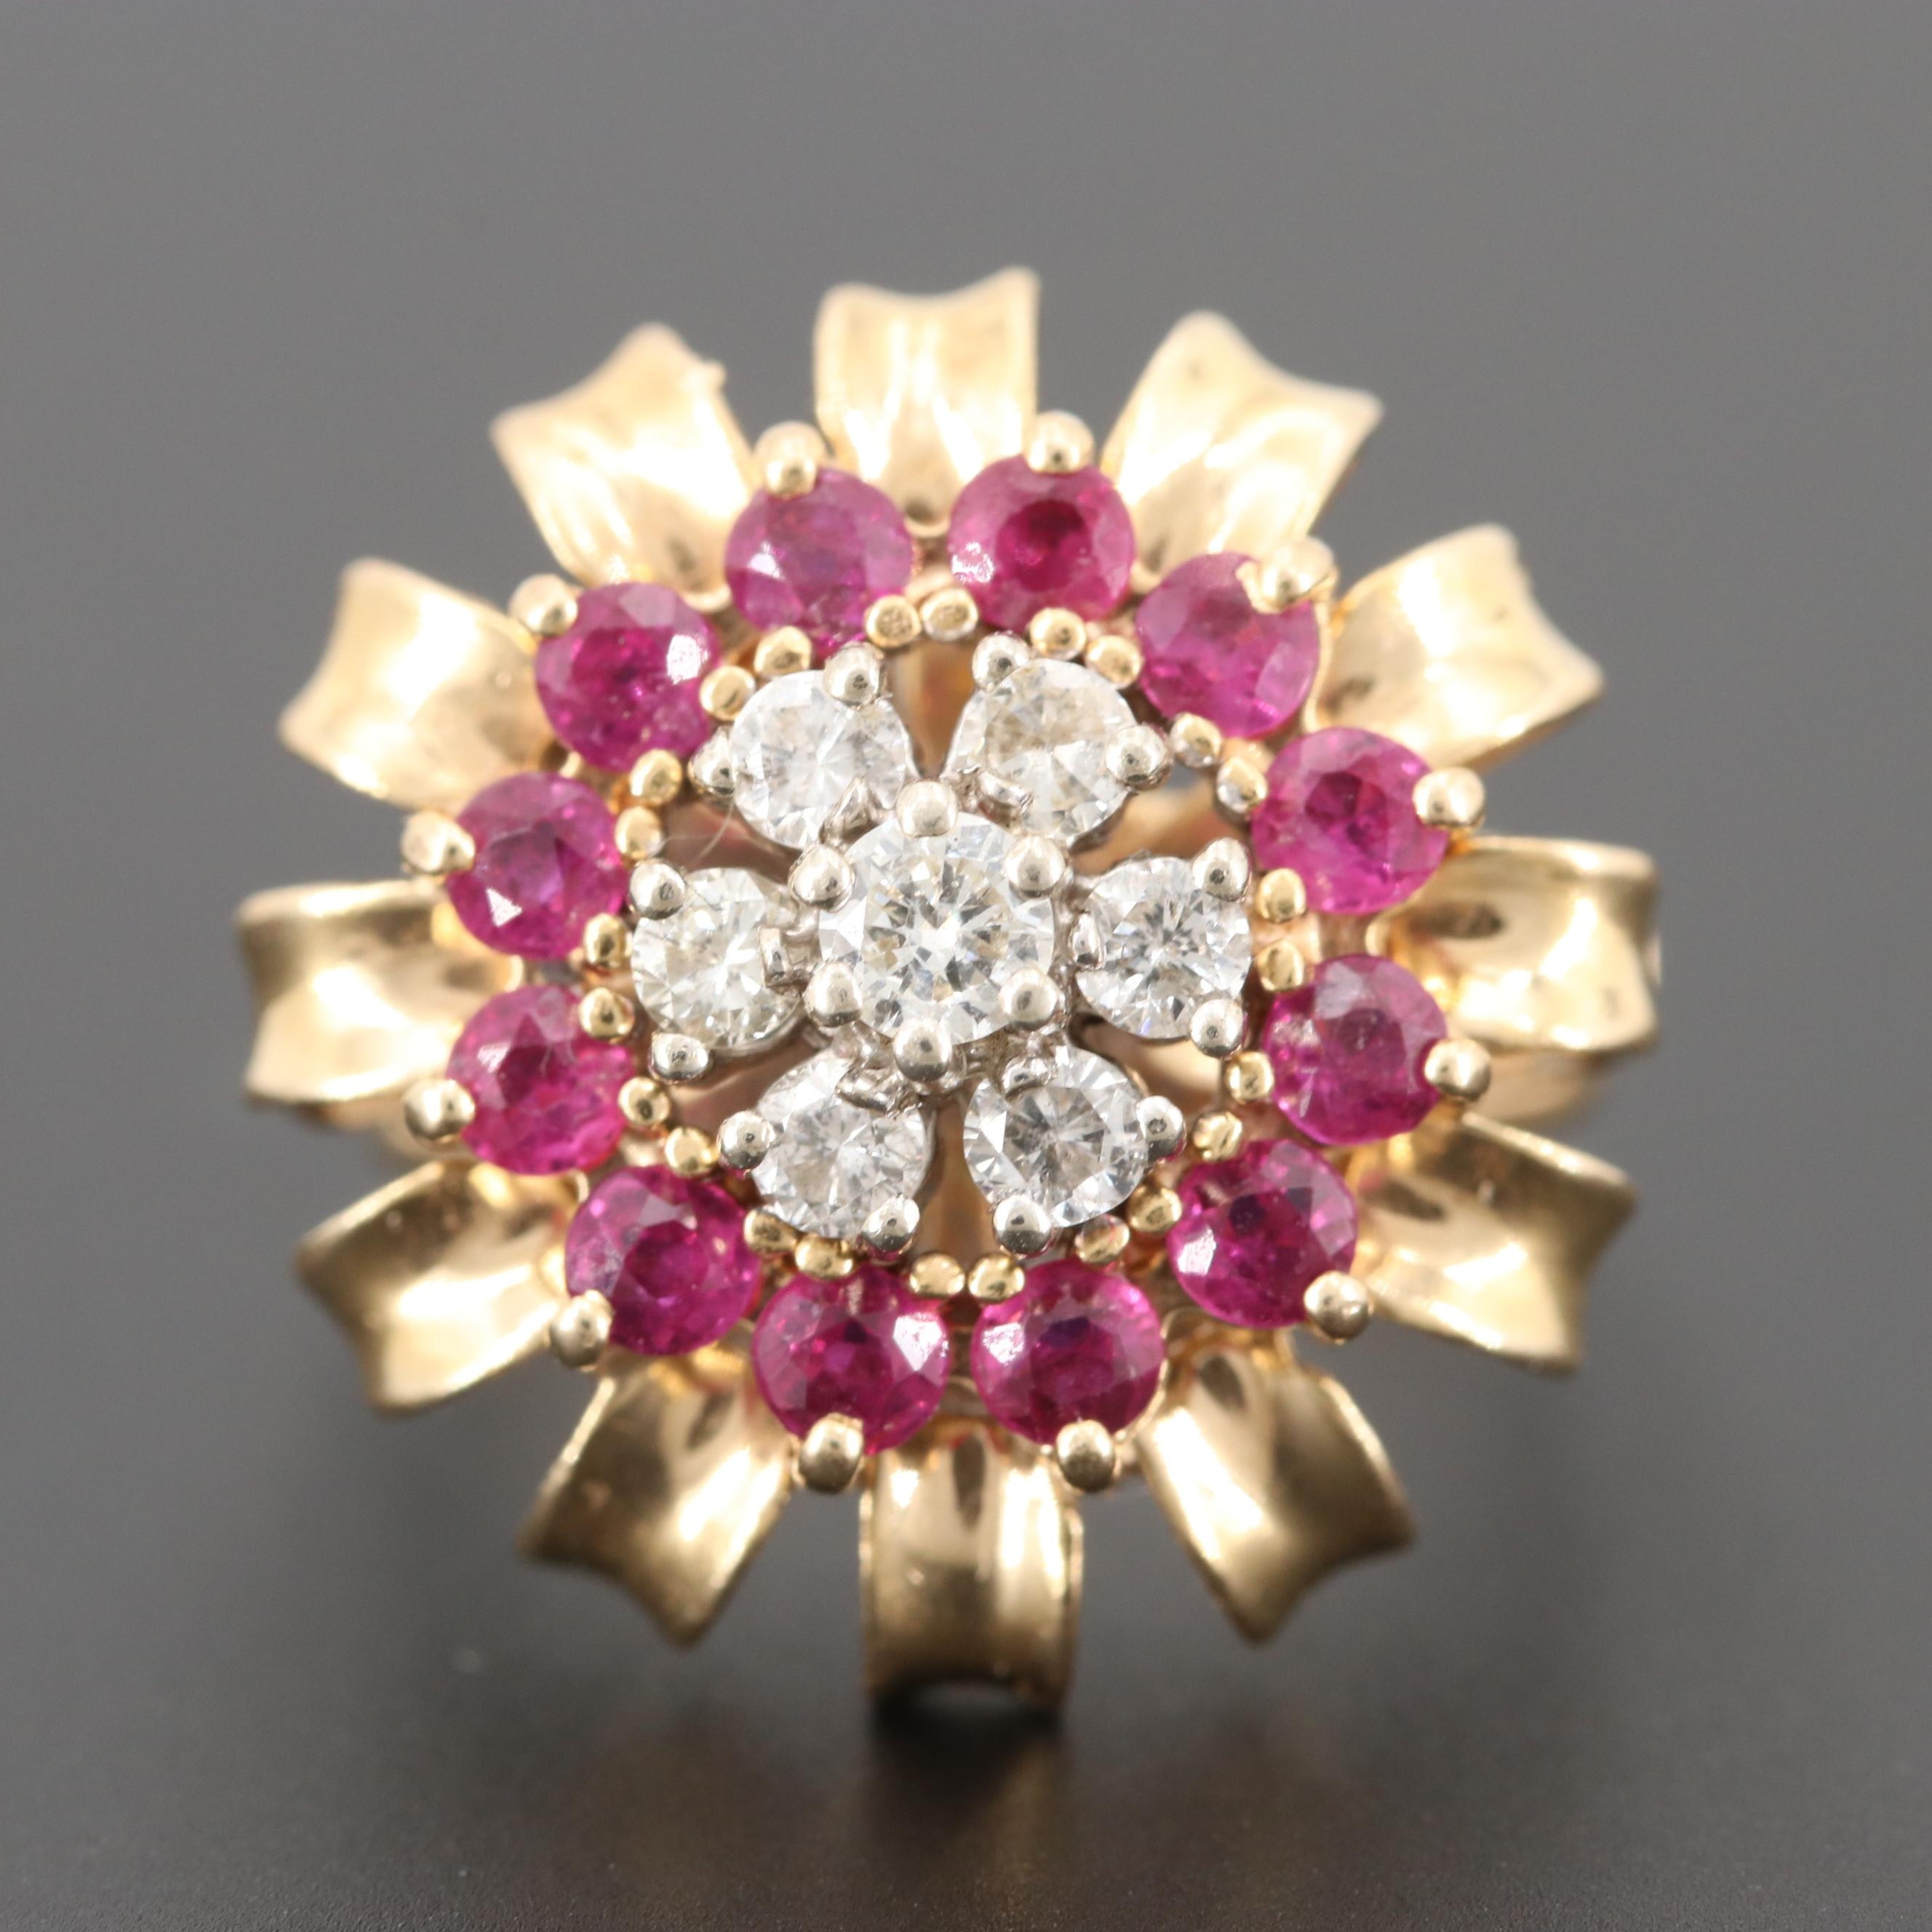 Retro 14K Yellow Gold Diamond and Ruby Floral Motif Ring